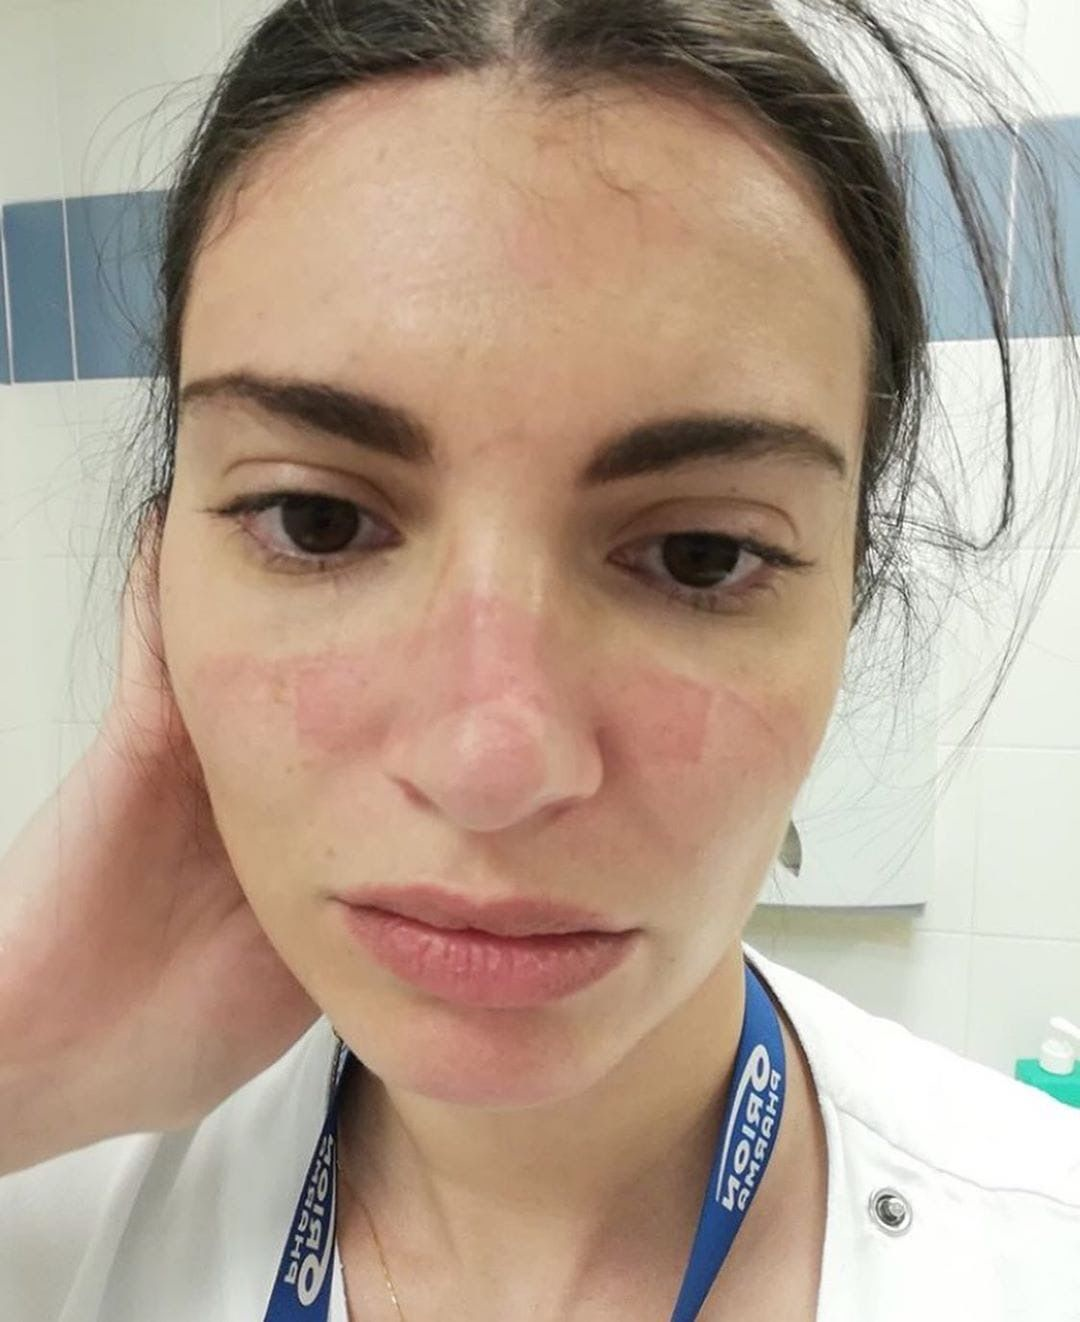 A young female nurse with a red wound on her nose caused by a face mask